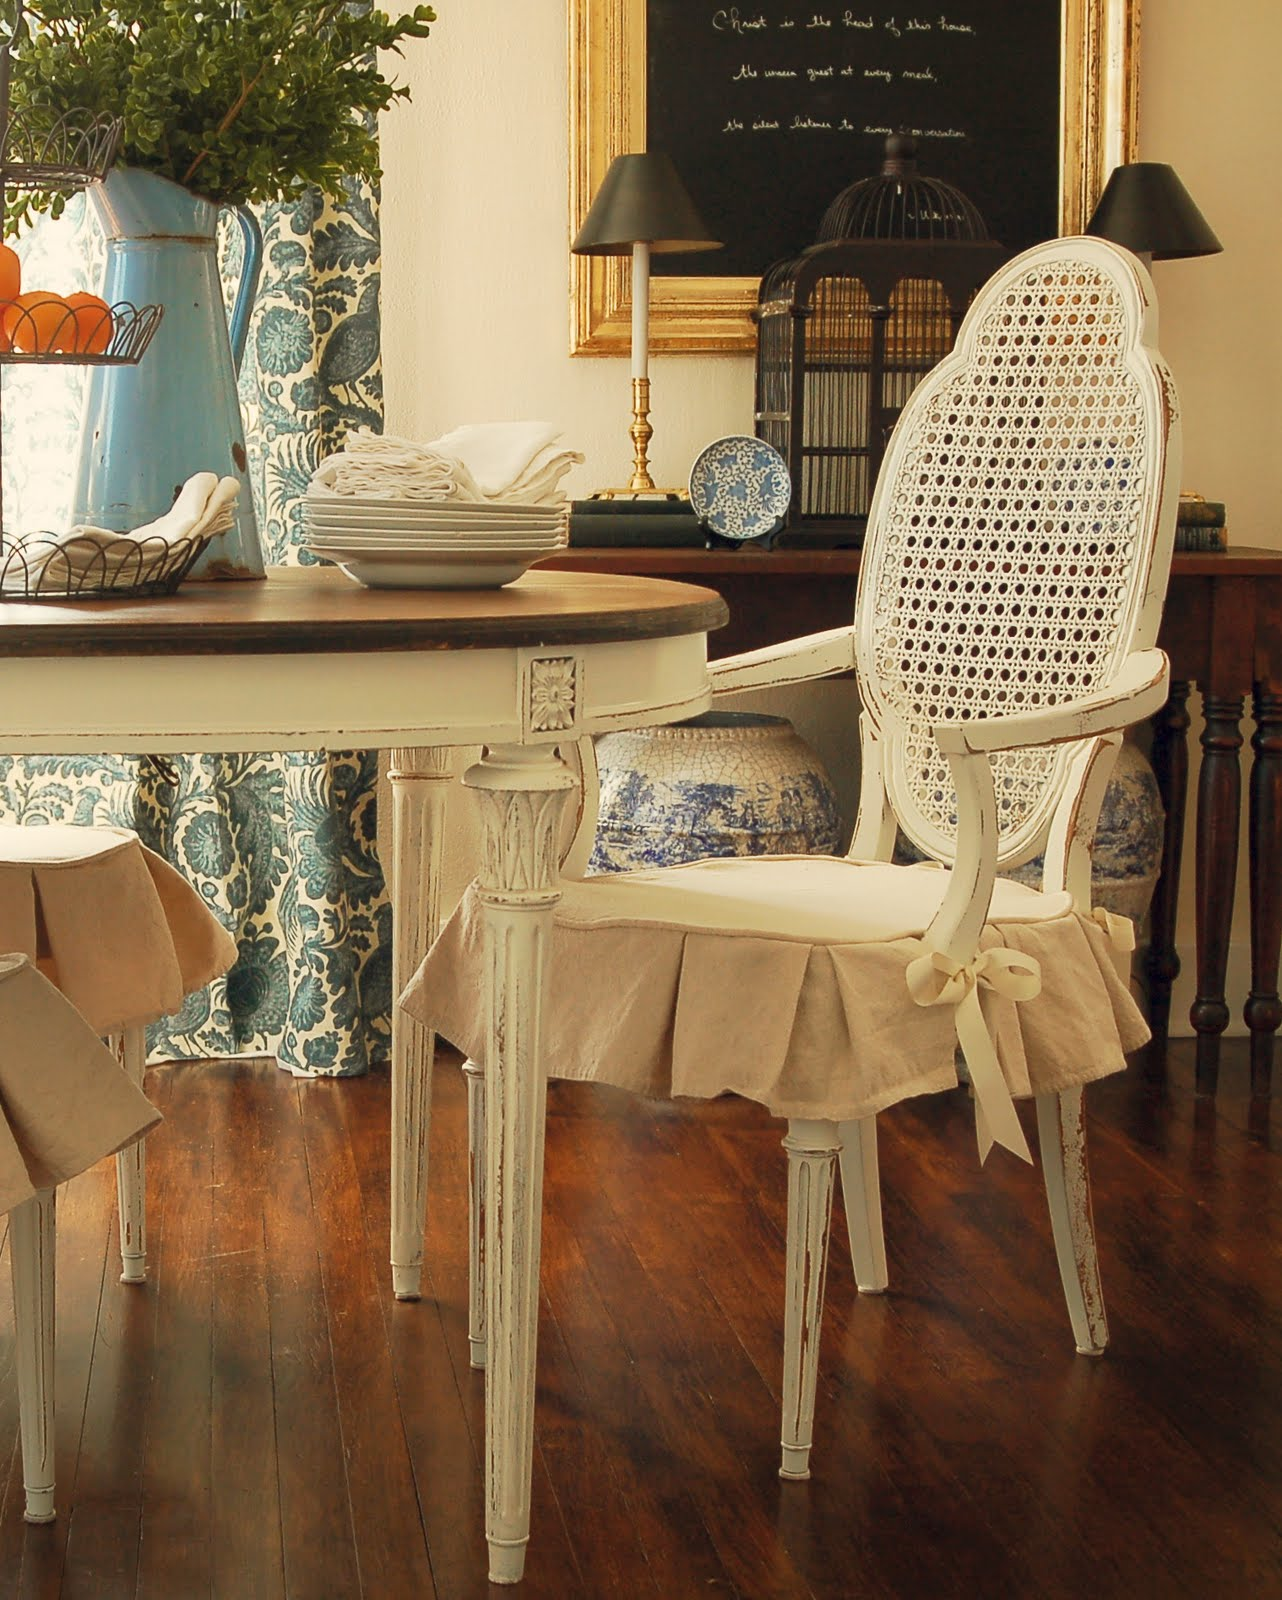 Shabby Chic Dining Room Ideas With Vintage Chairs Adorned Slipcovers For